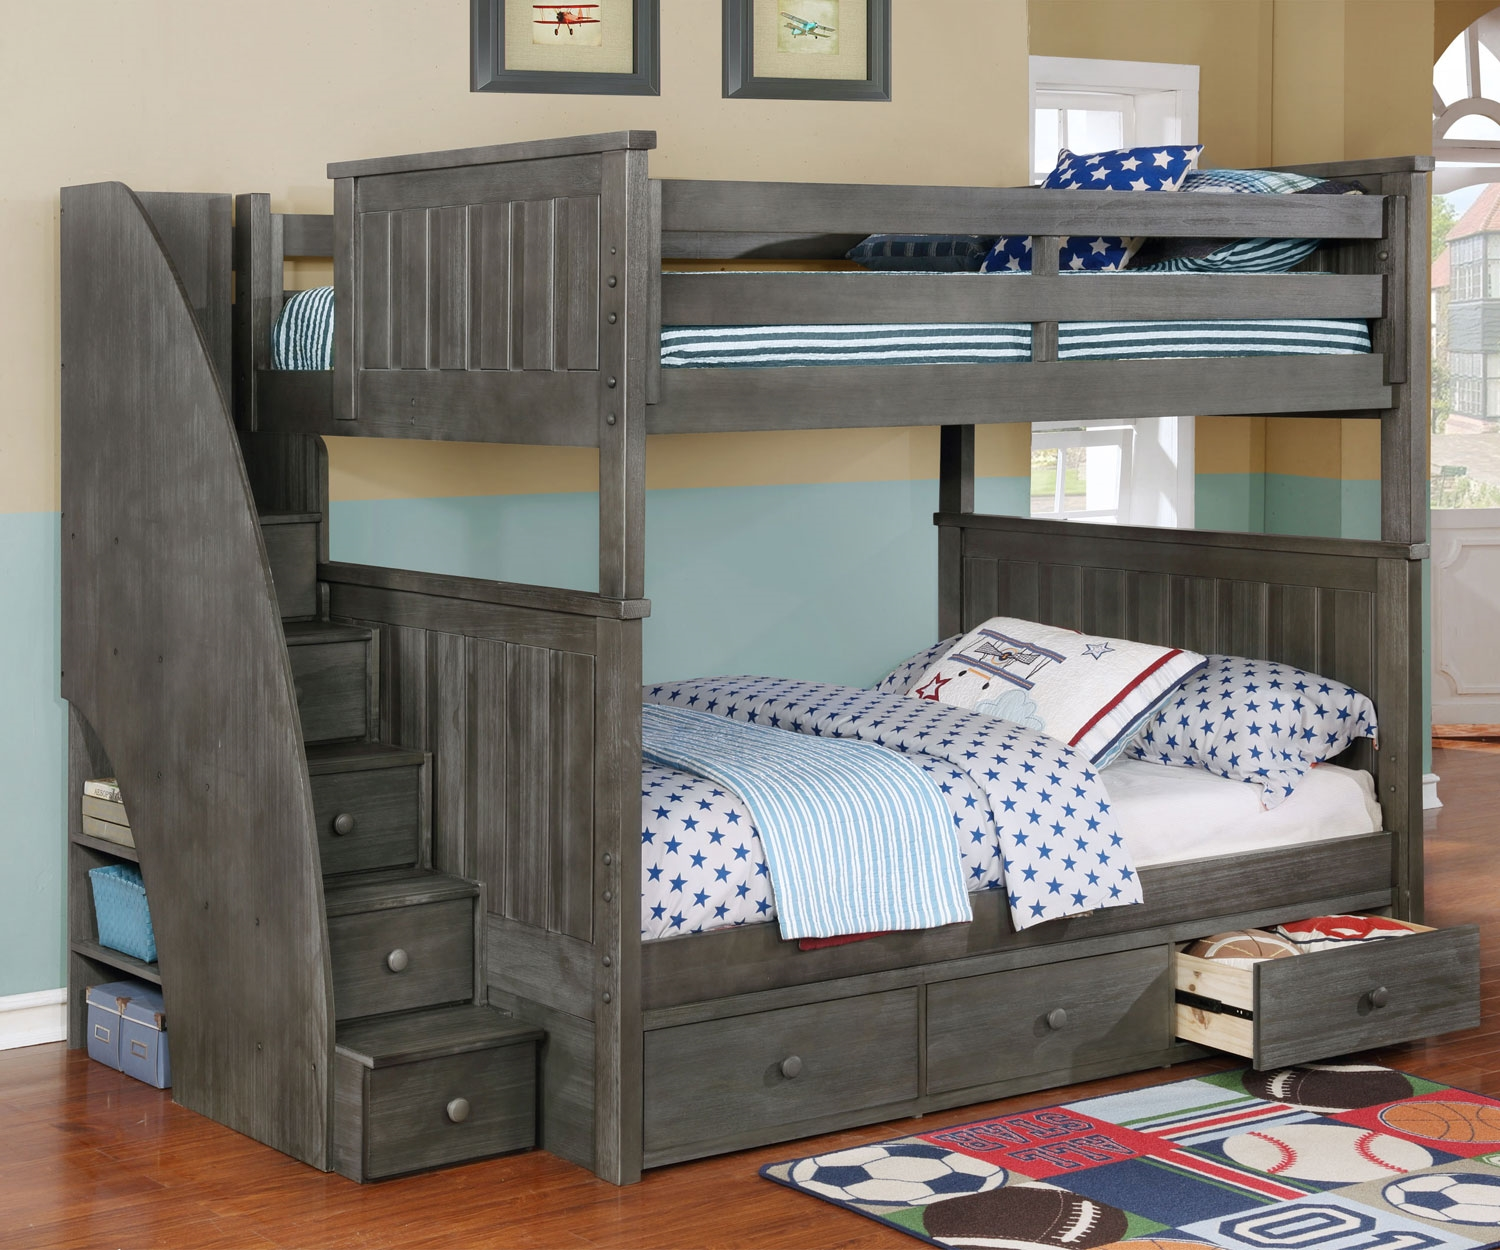 Image of: Full Bunk Bed with Storage